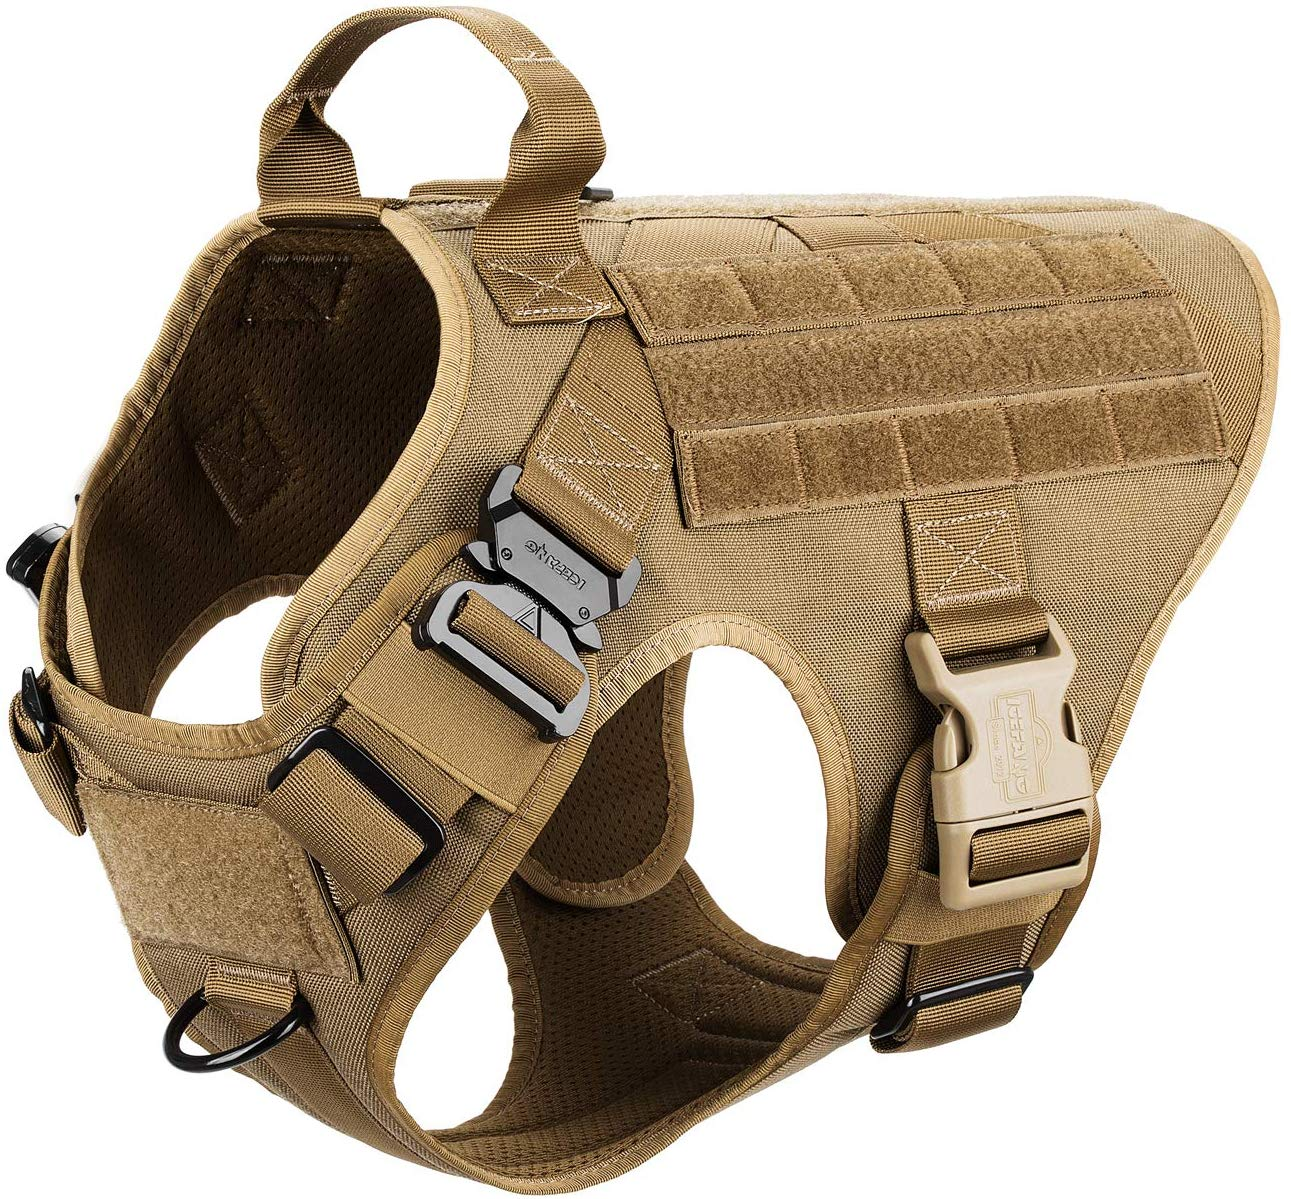 ICEFANG's Tactical Dog Harness Review